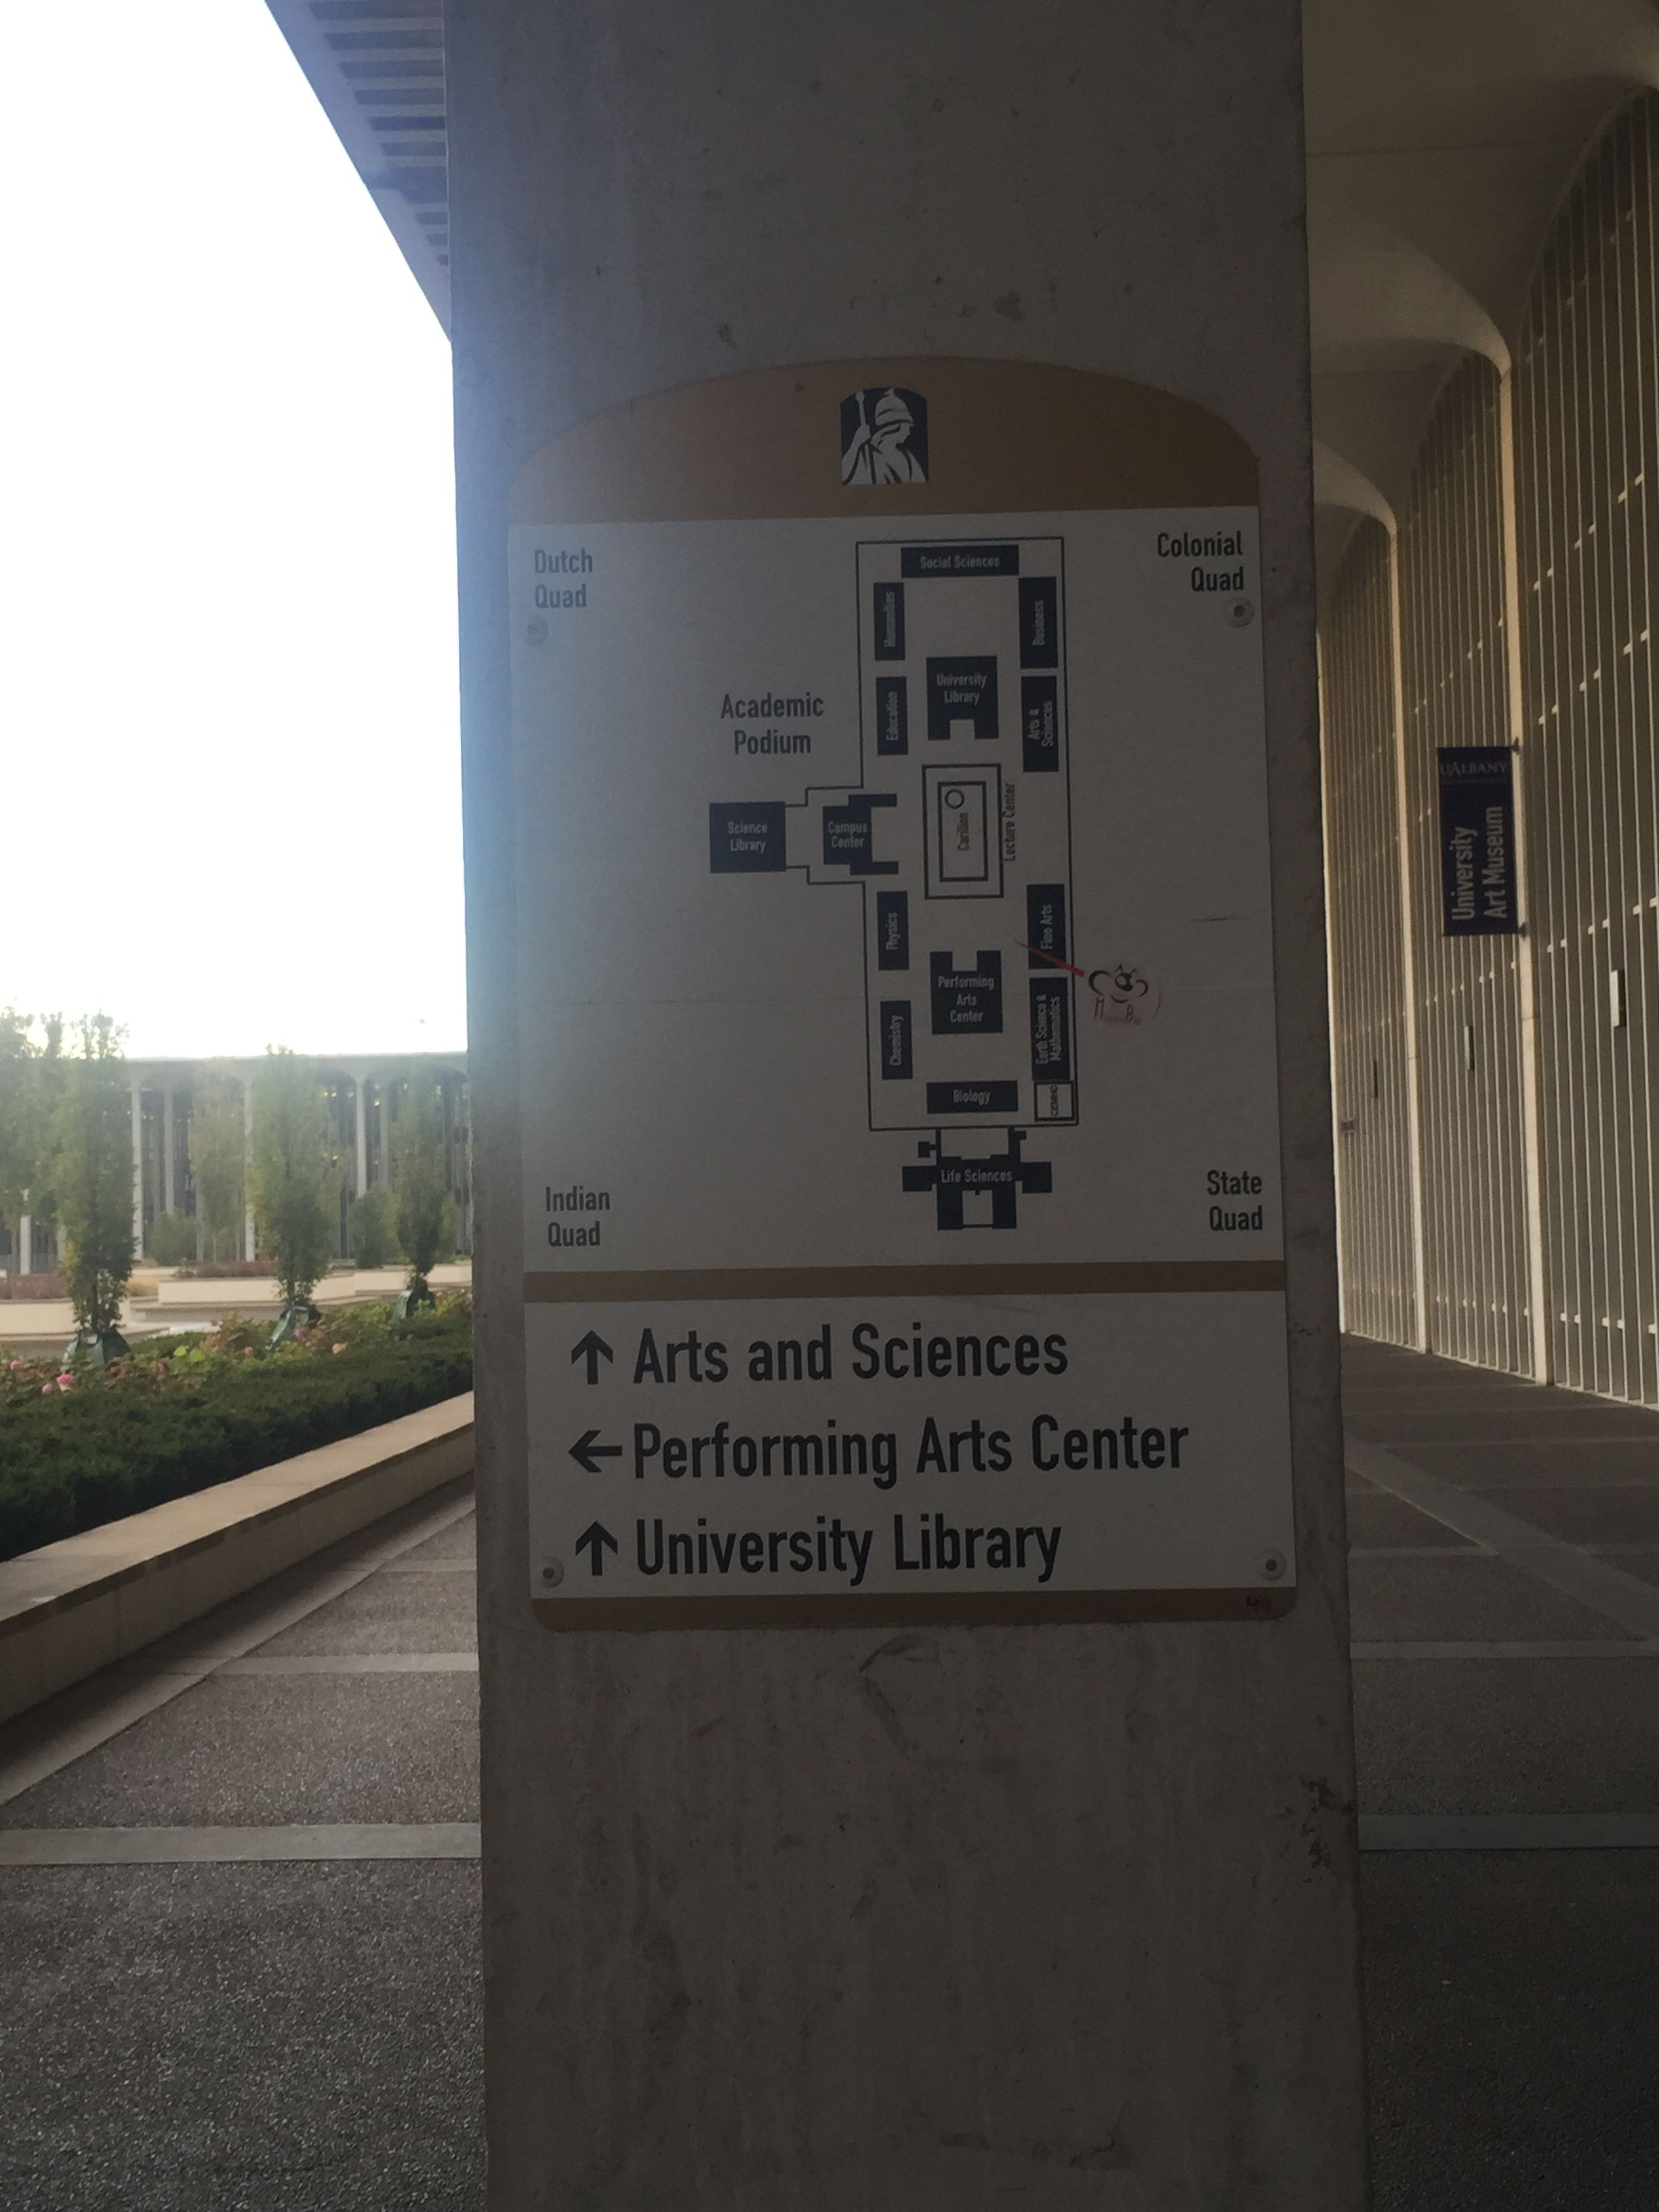 Directional sign performing arts center